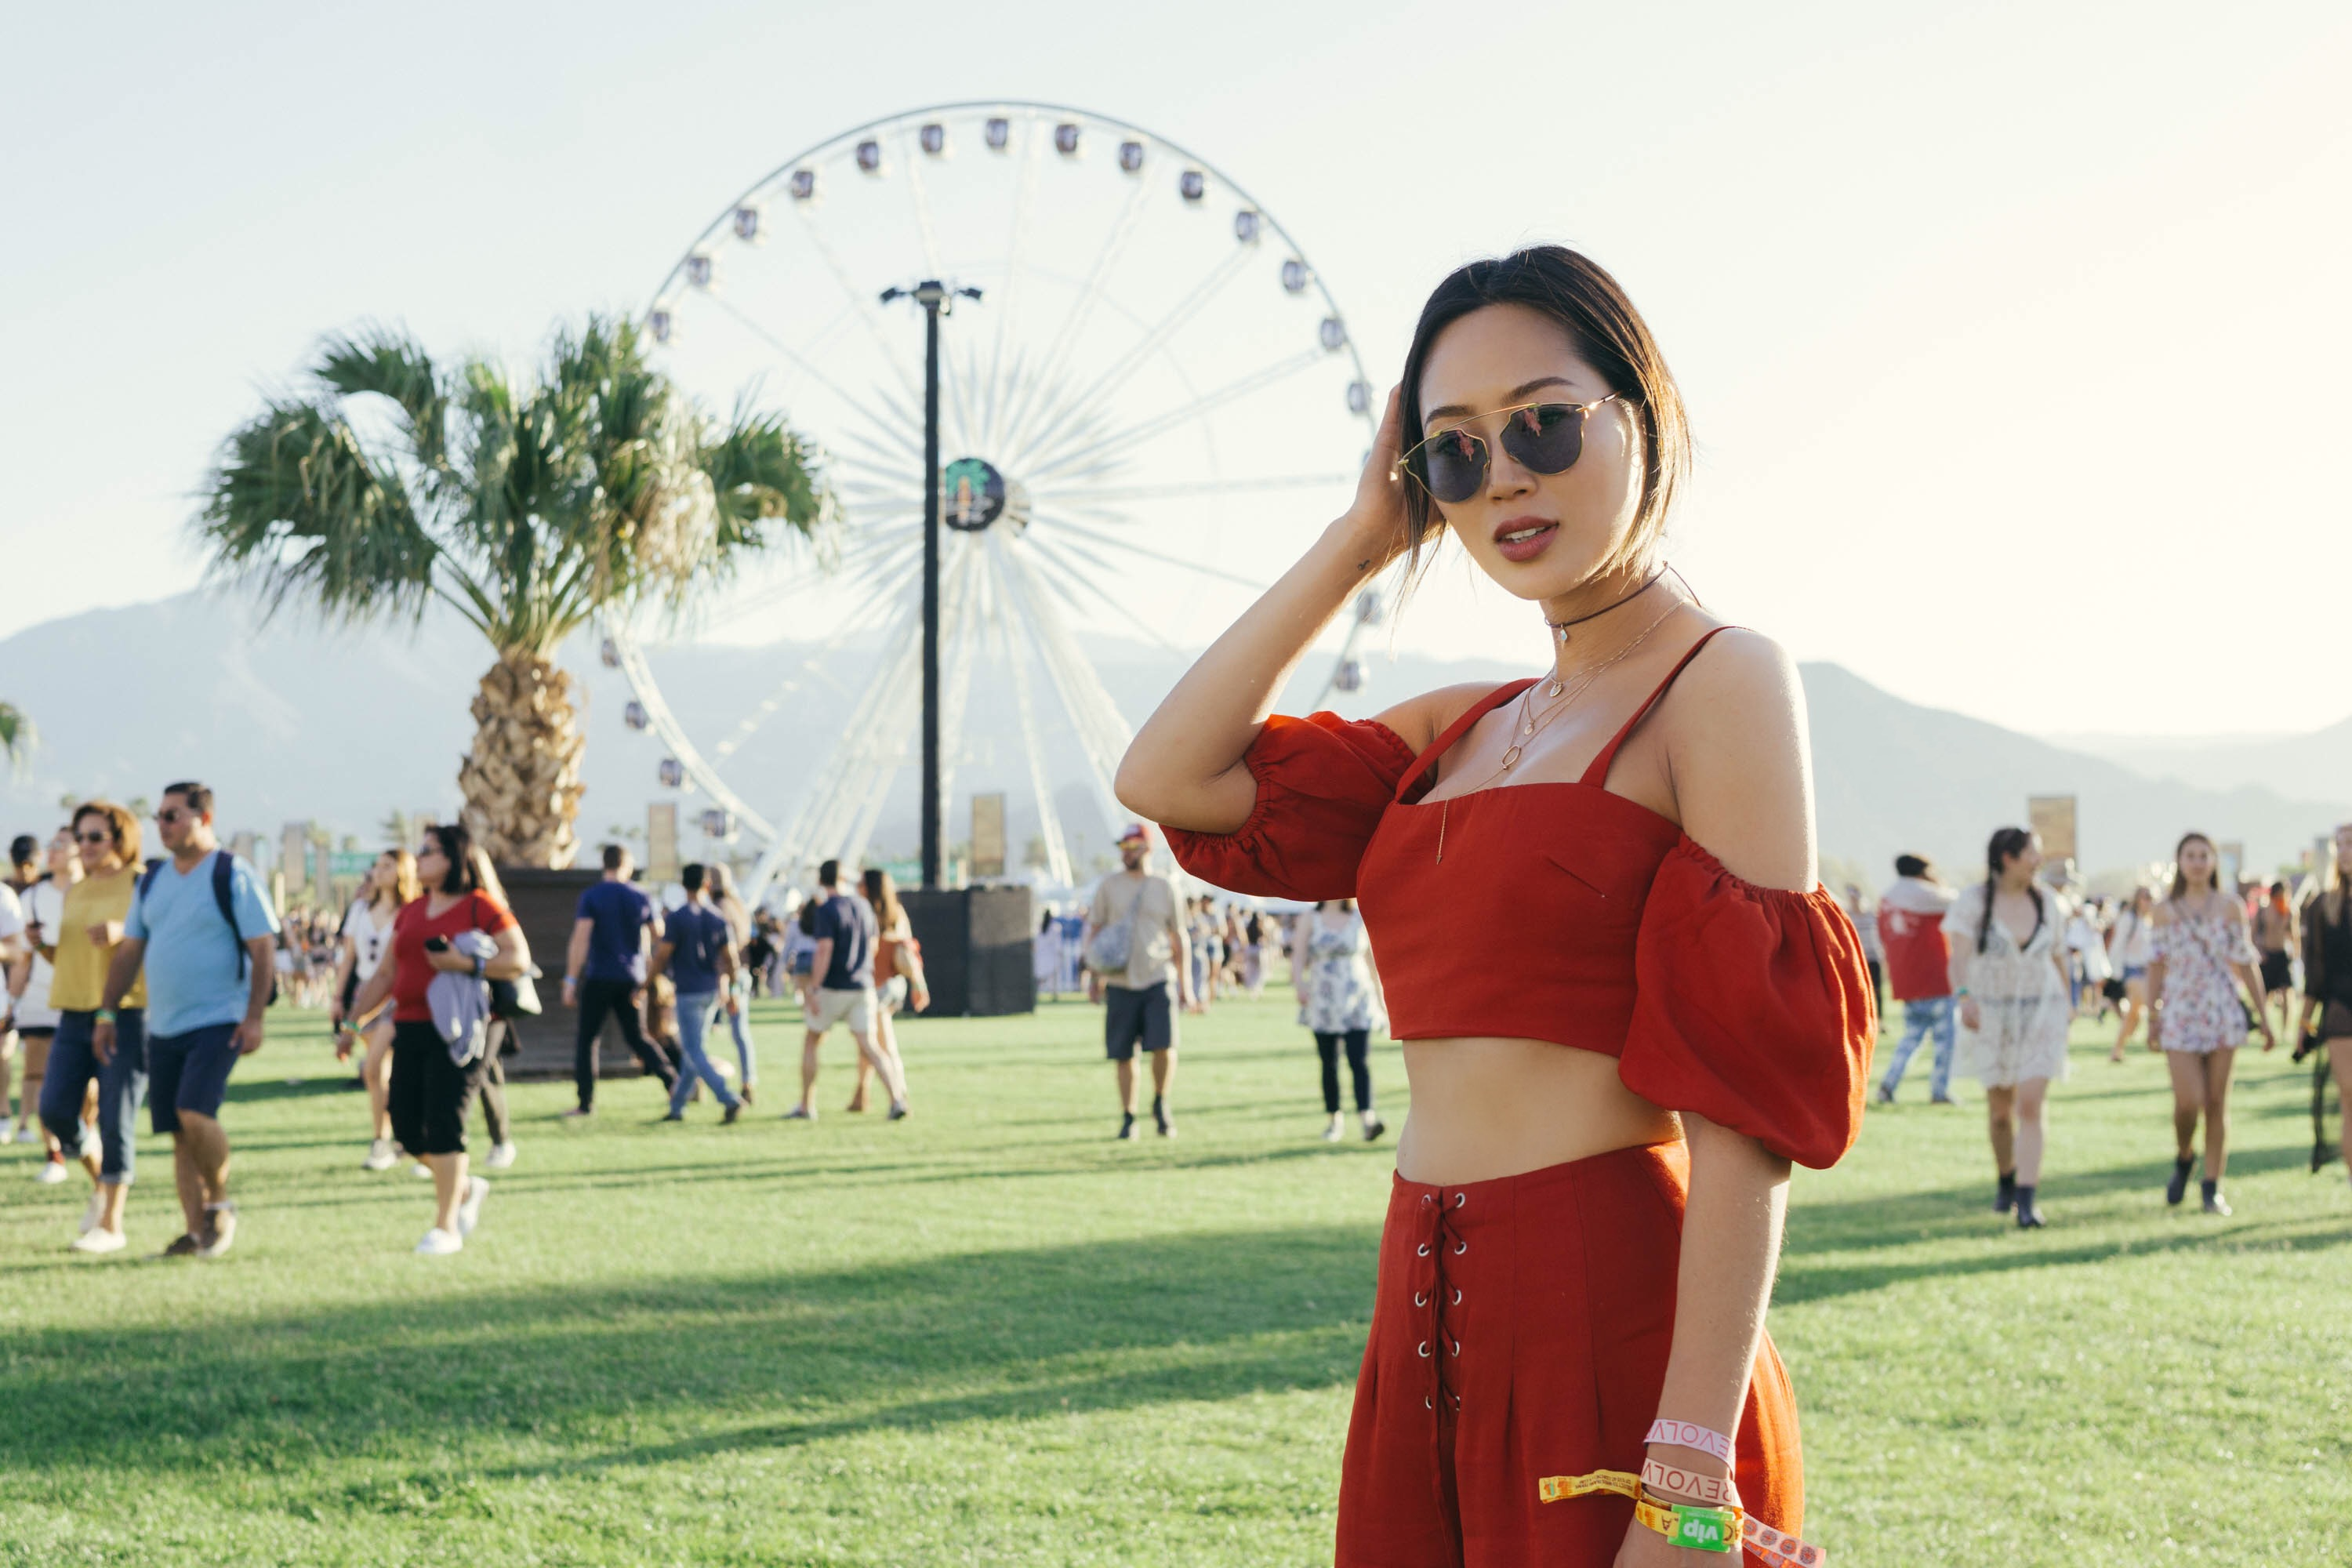 khaleidoscope-coachella-art-youth-society-song-of-style-5